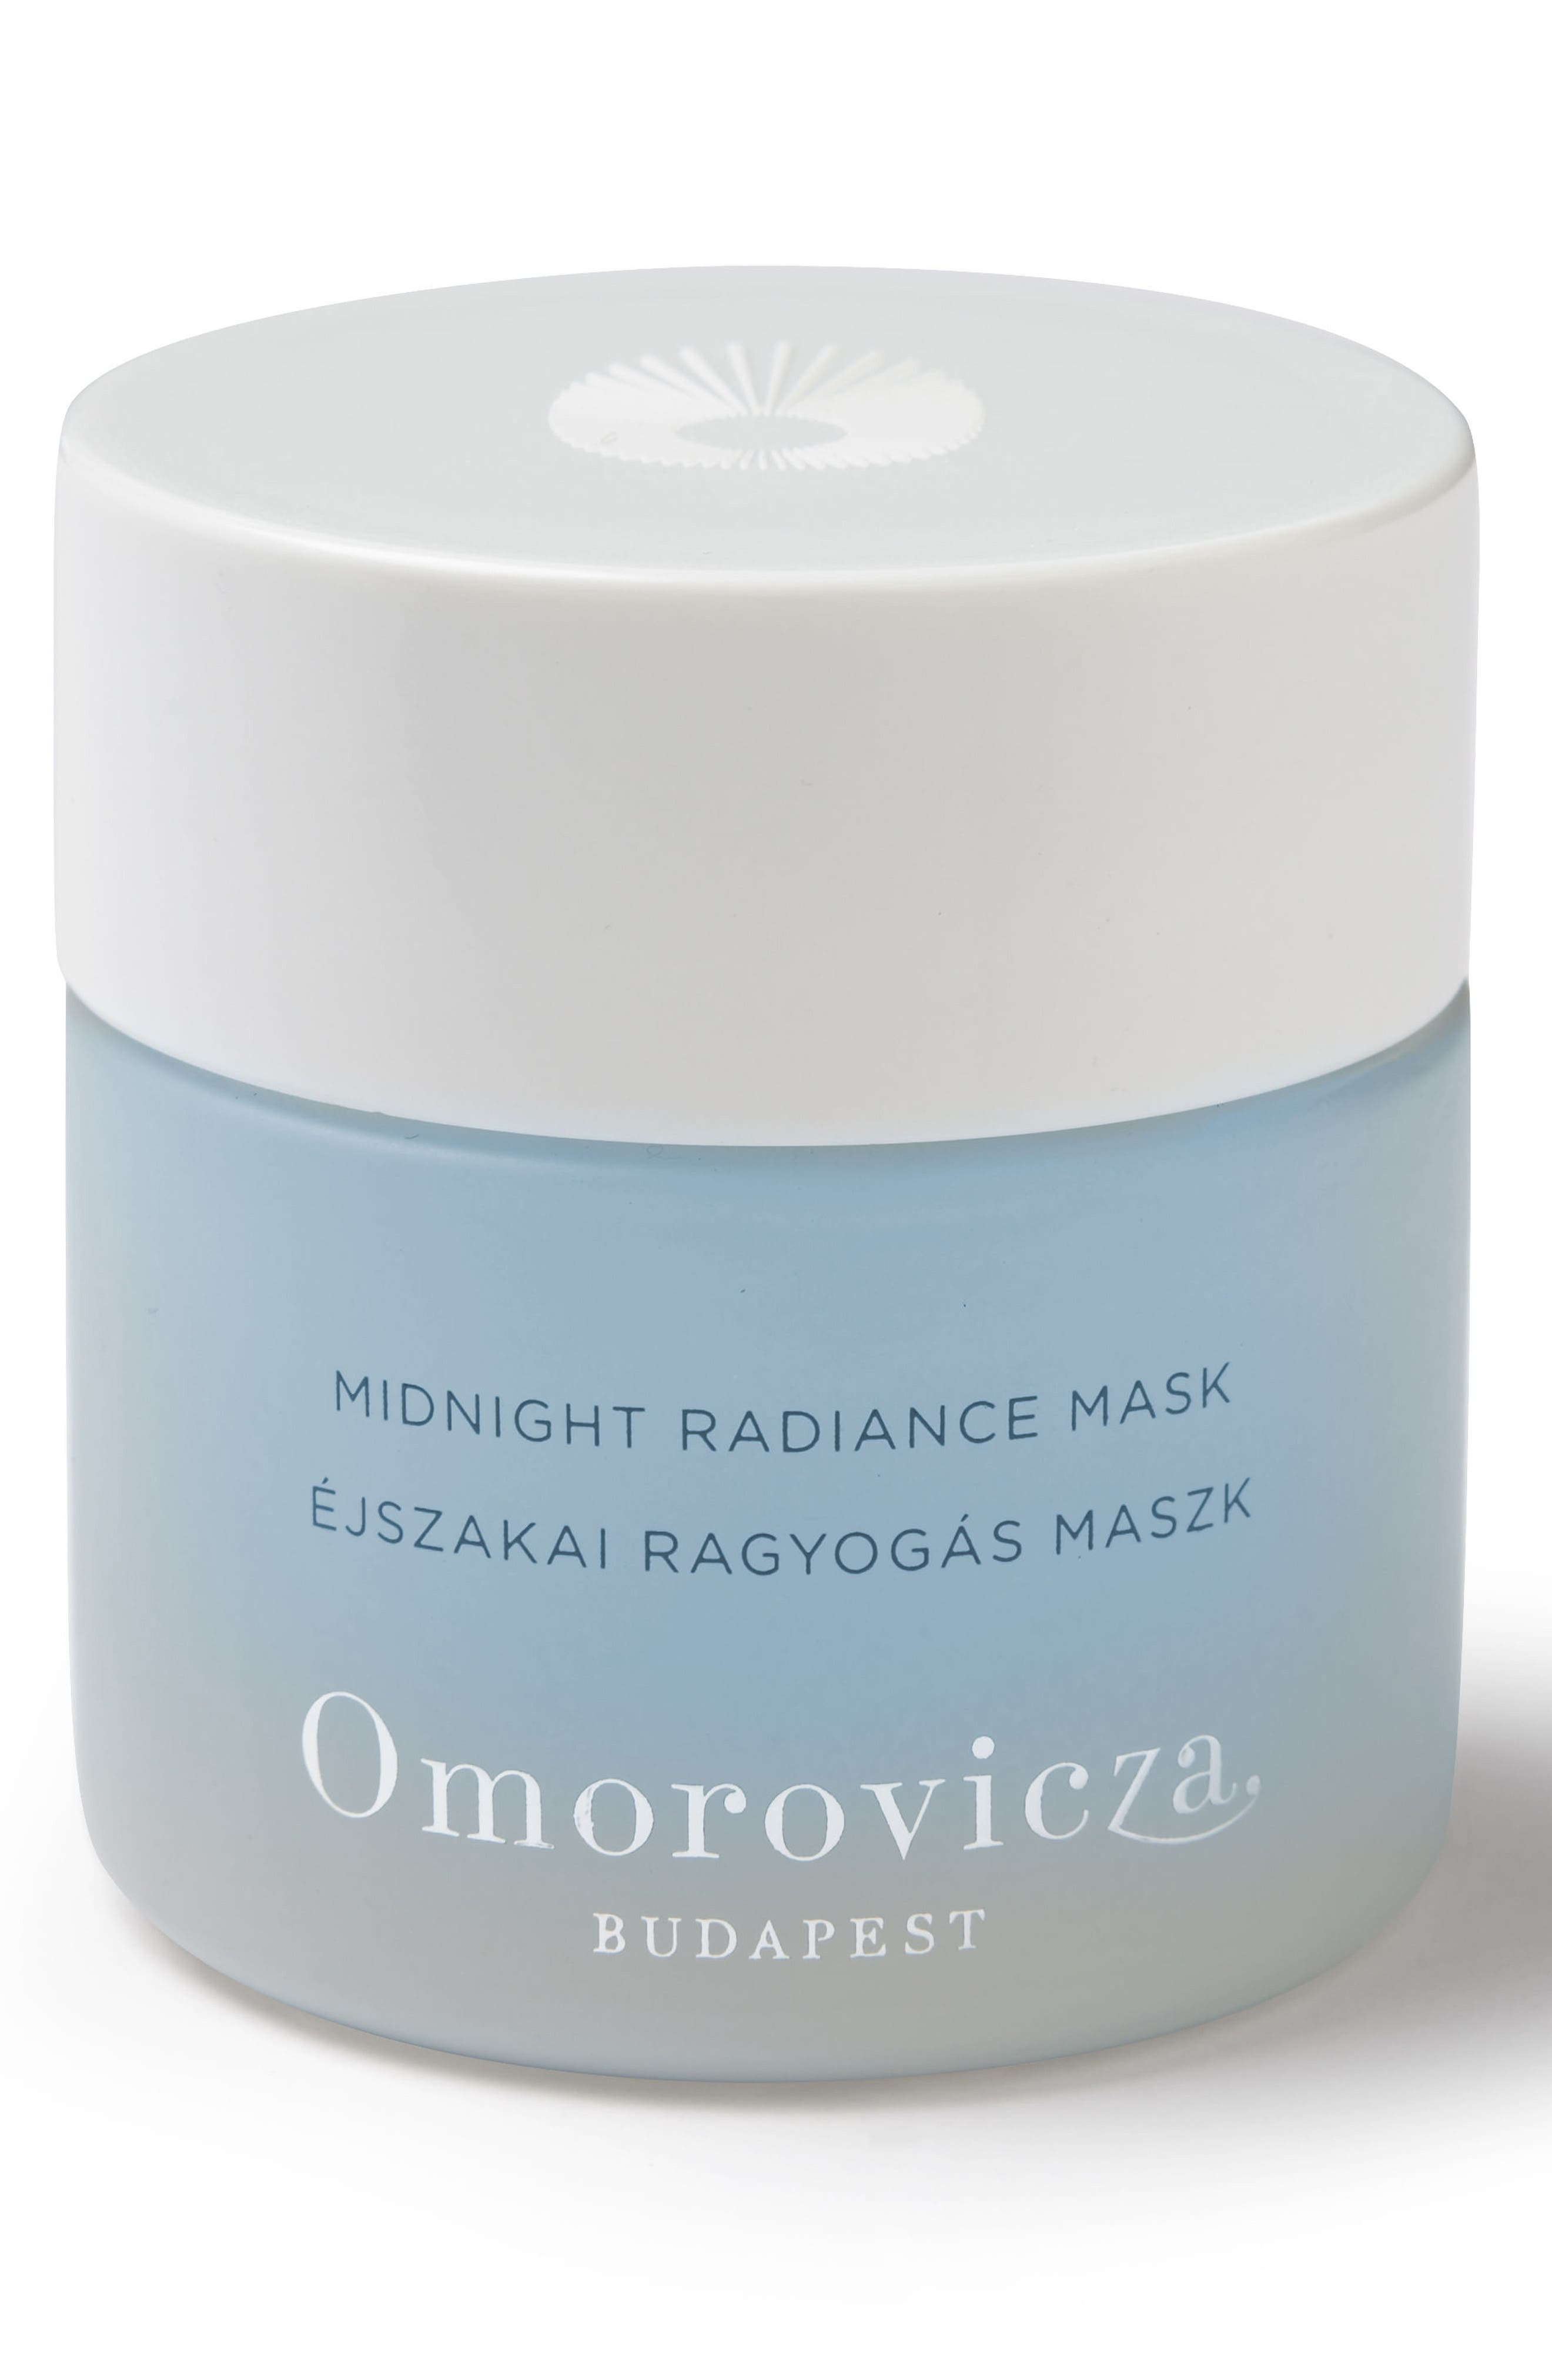 Midnight Radiance Mask,                         Main,                         color, NO COLOR